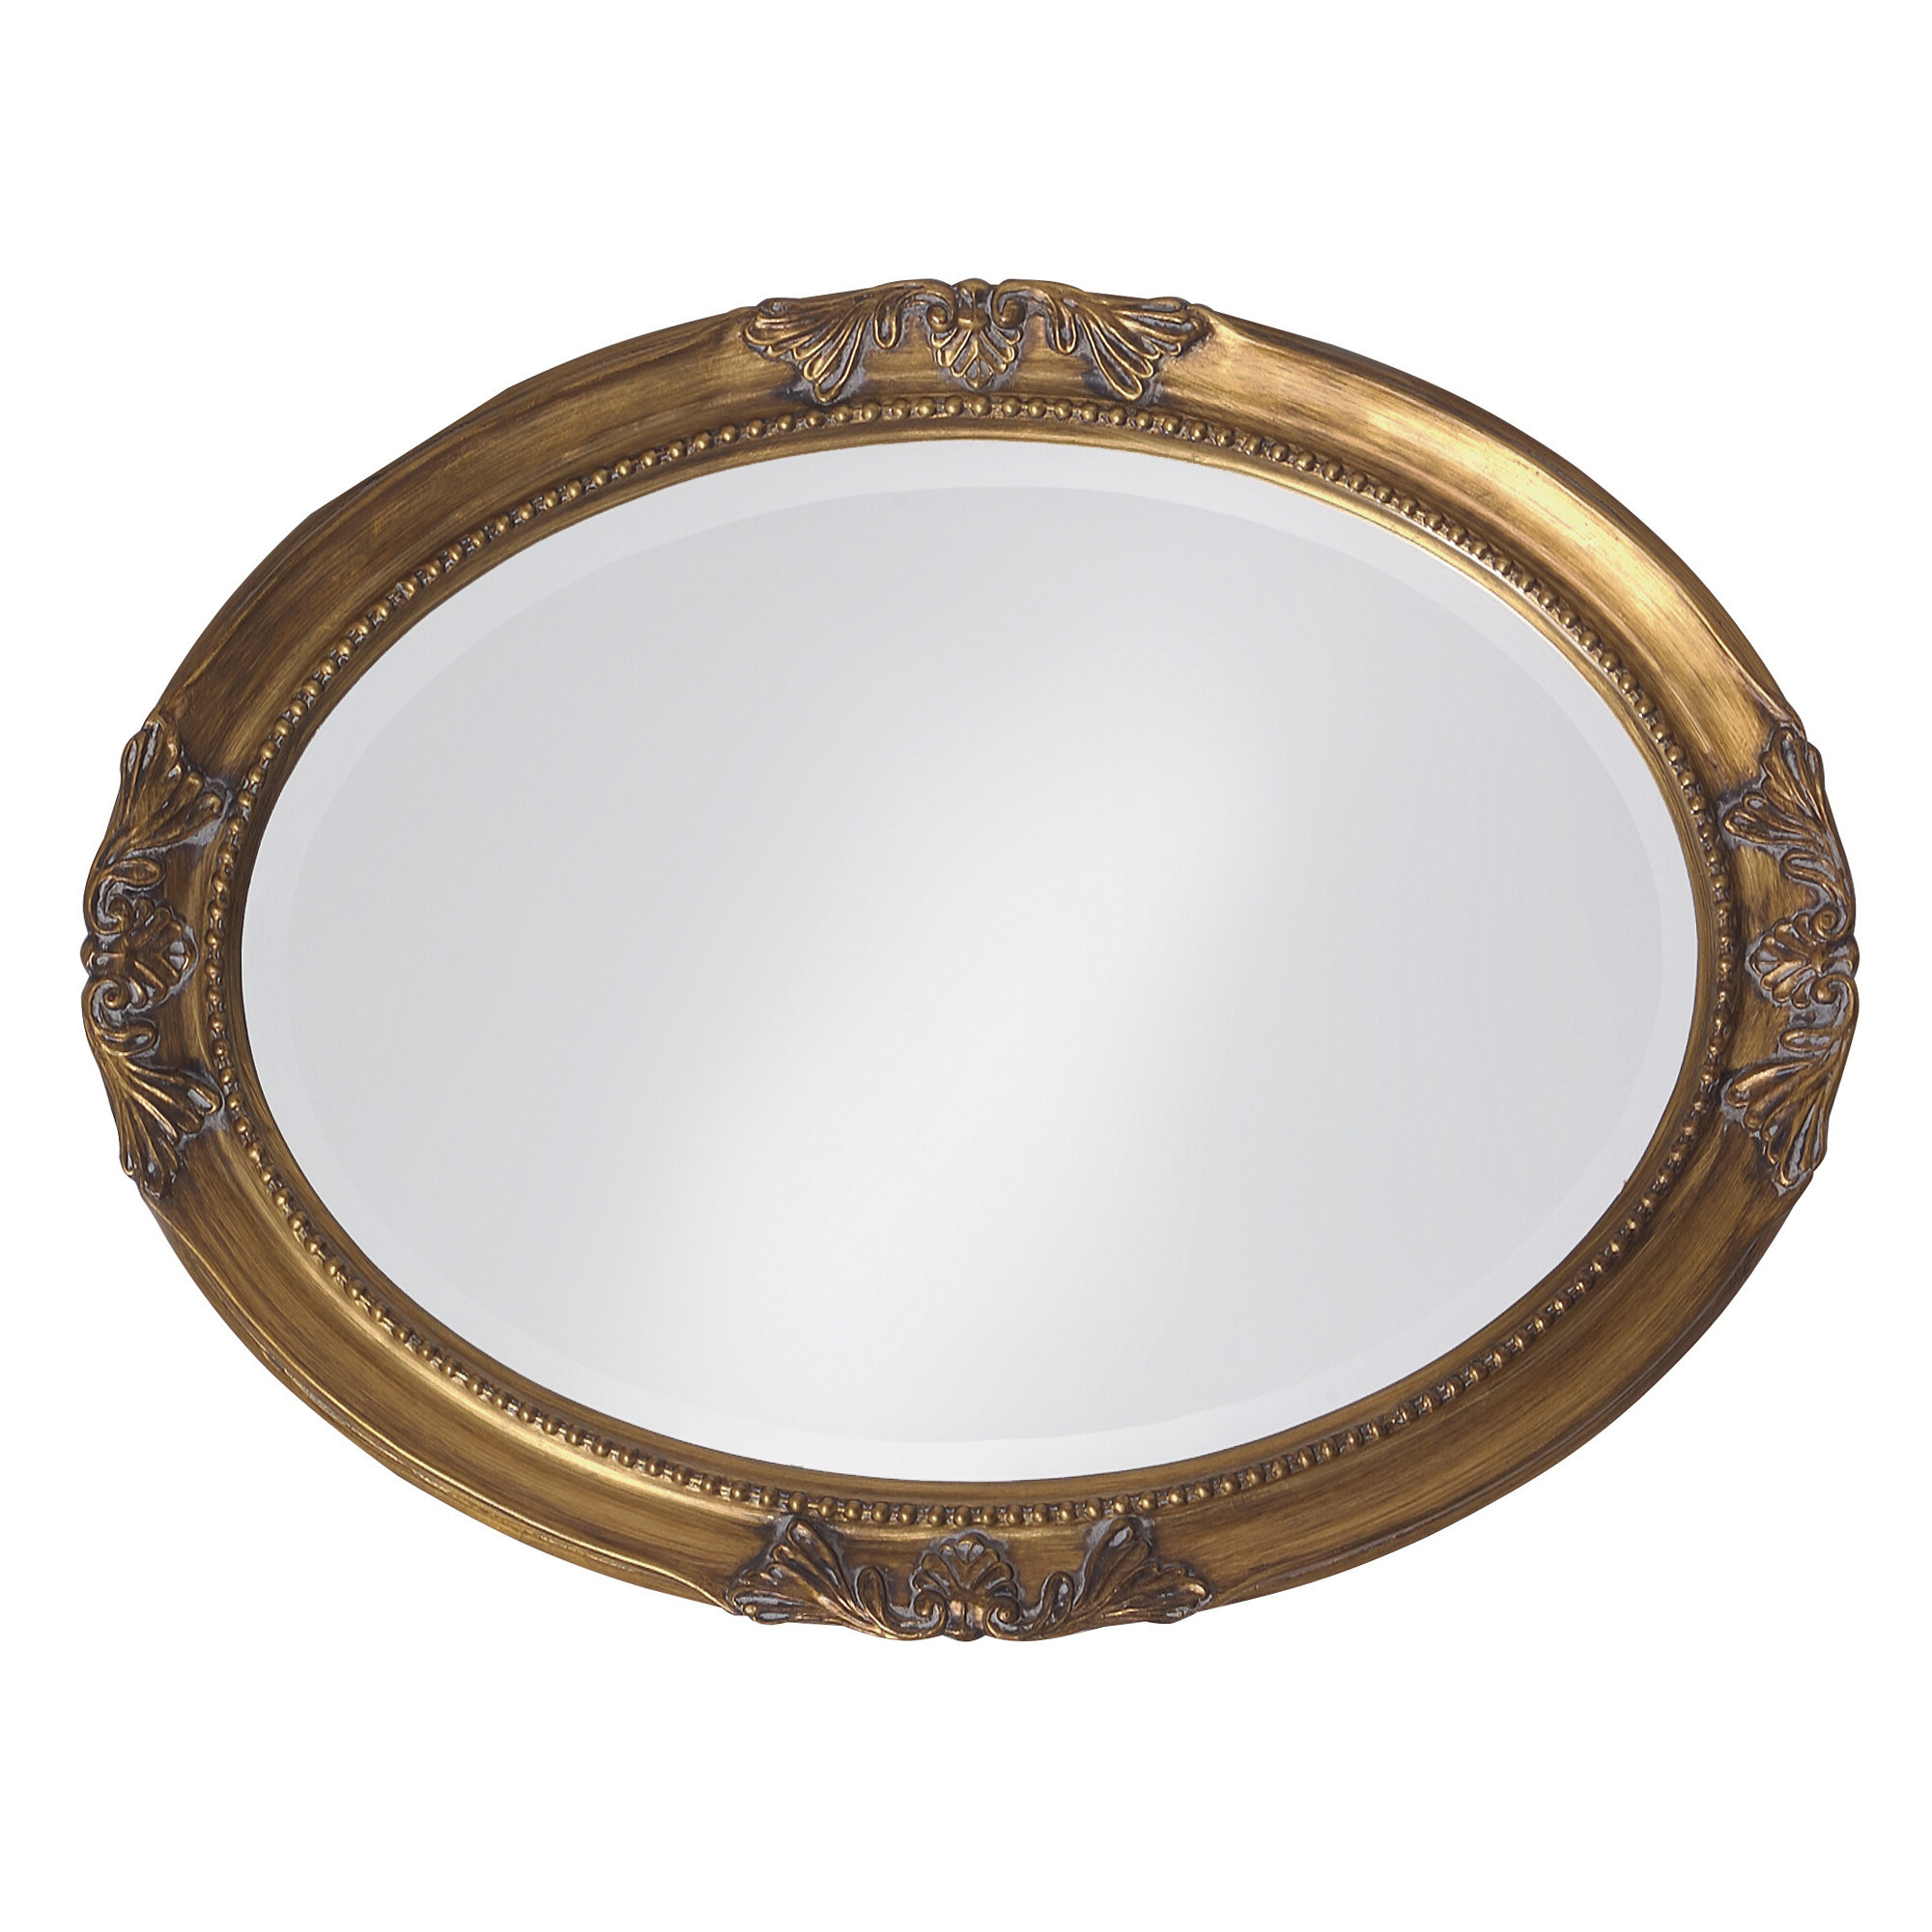 Well Known Pfister Oval Wood Wall Mirrors Throughout Oval Wood Wall Mirror (View 6 of 20)